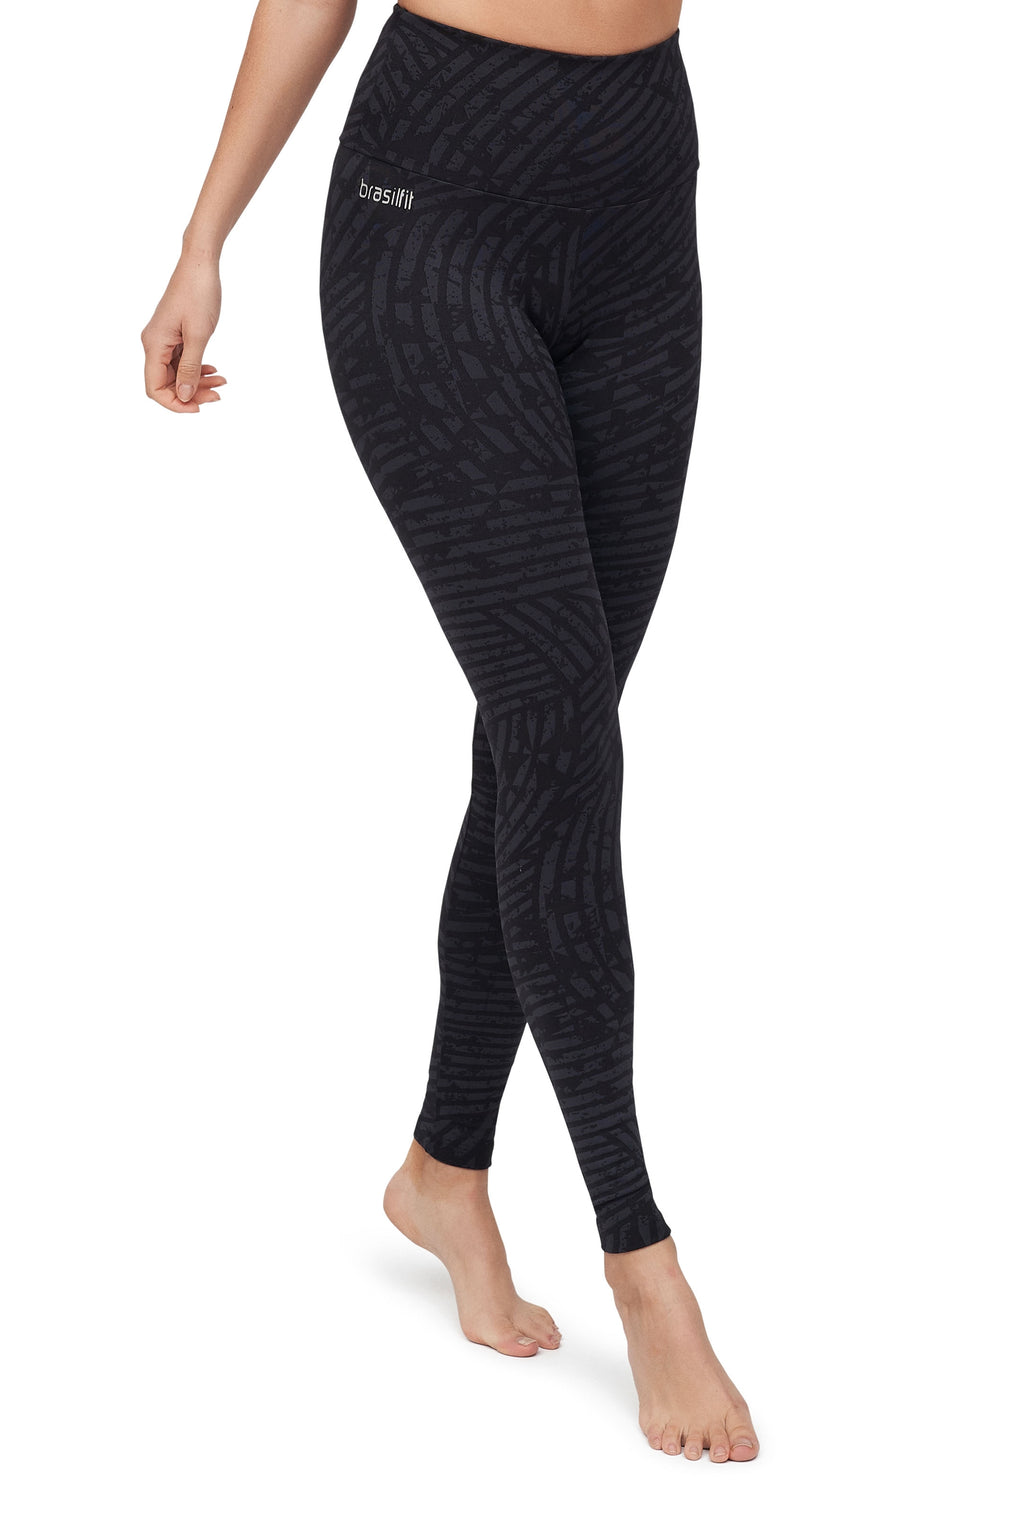 Dingle High Waisted Full Length Legging